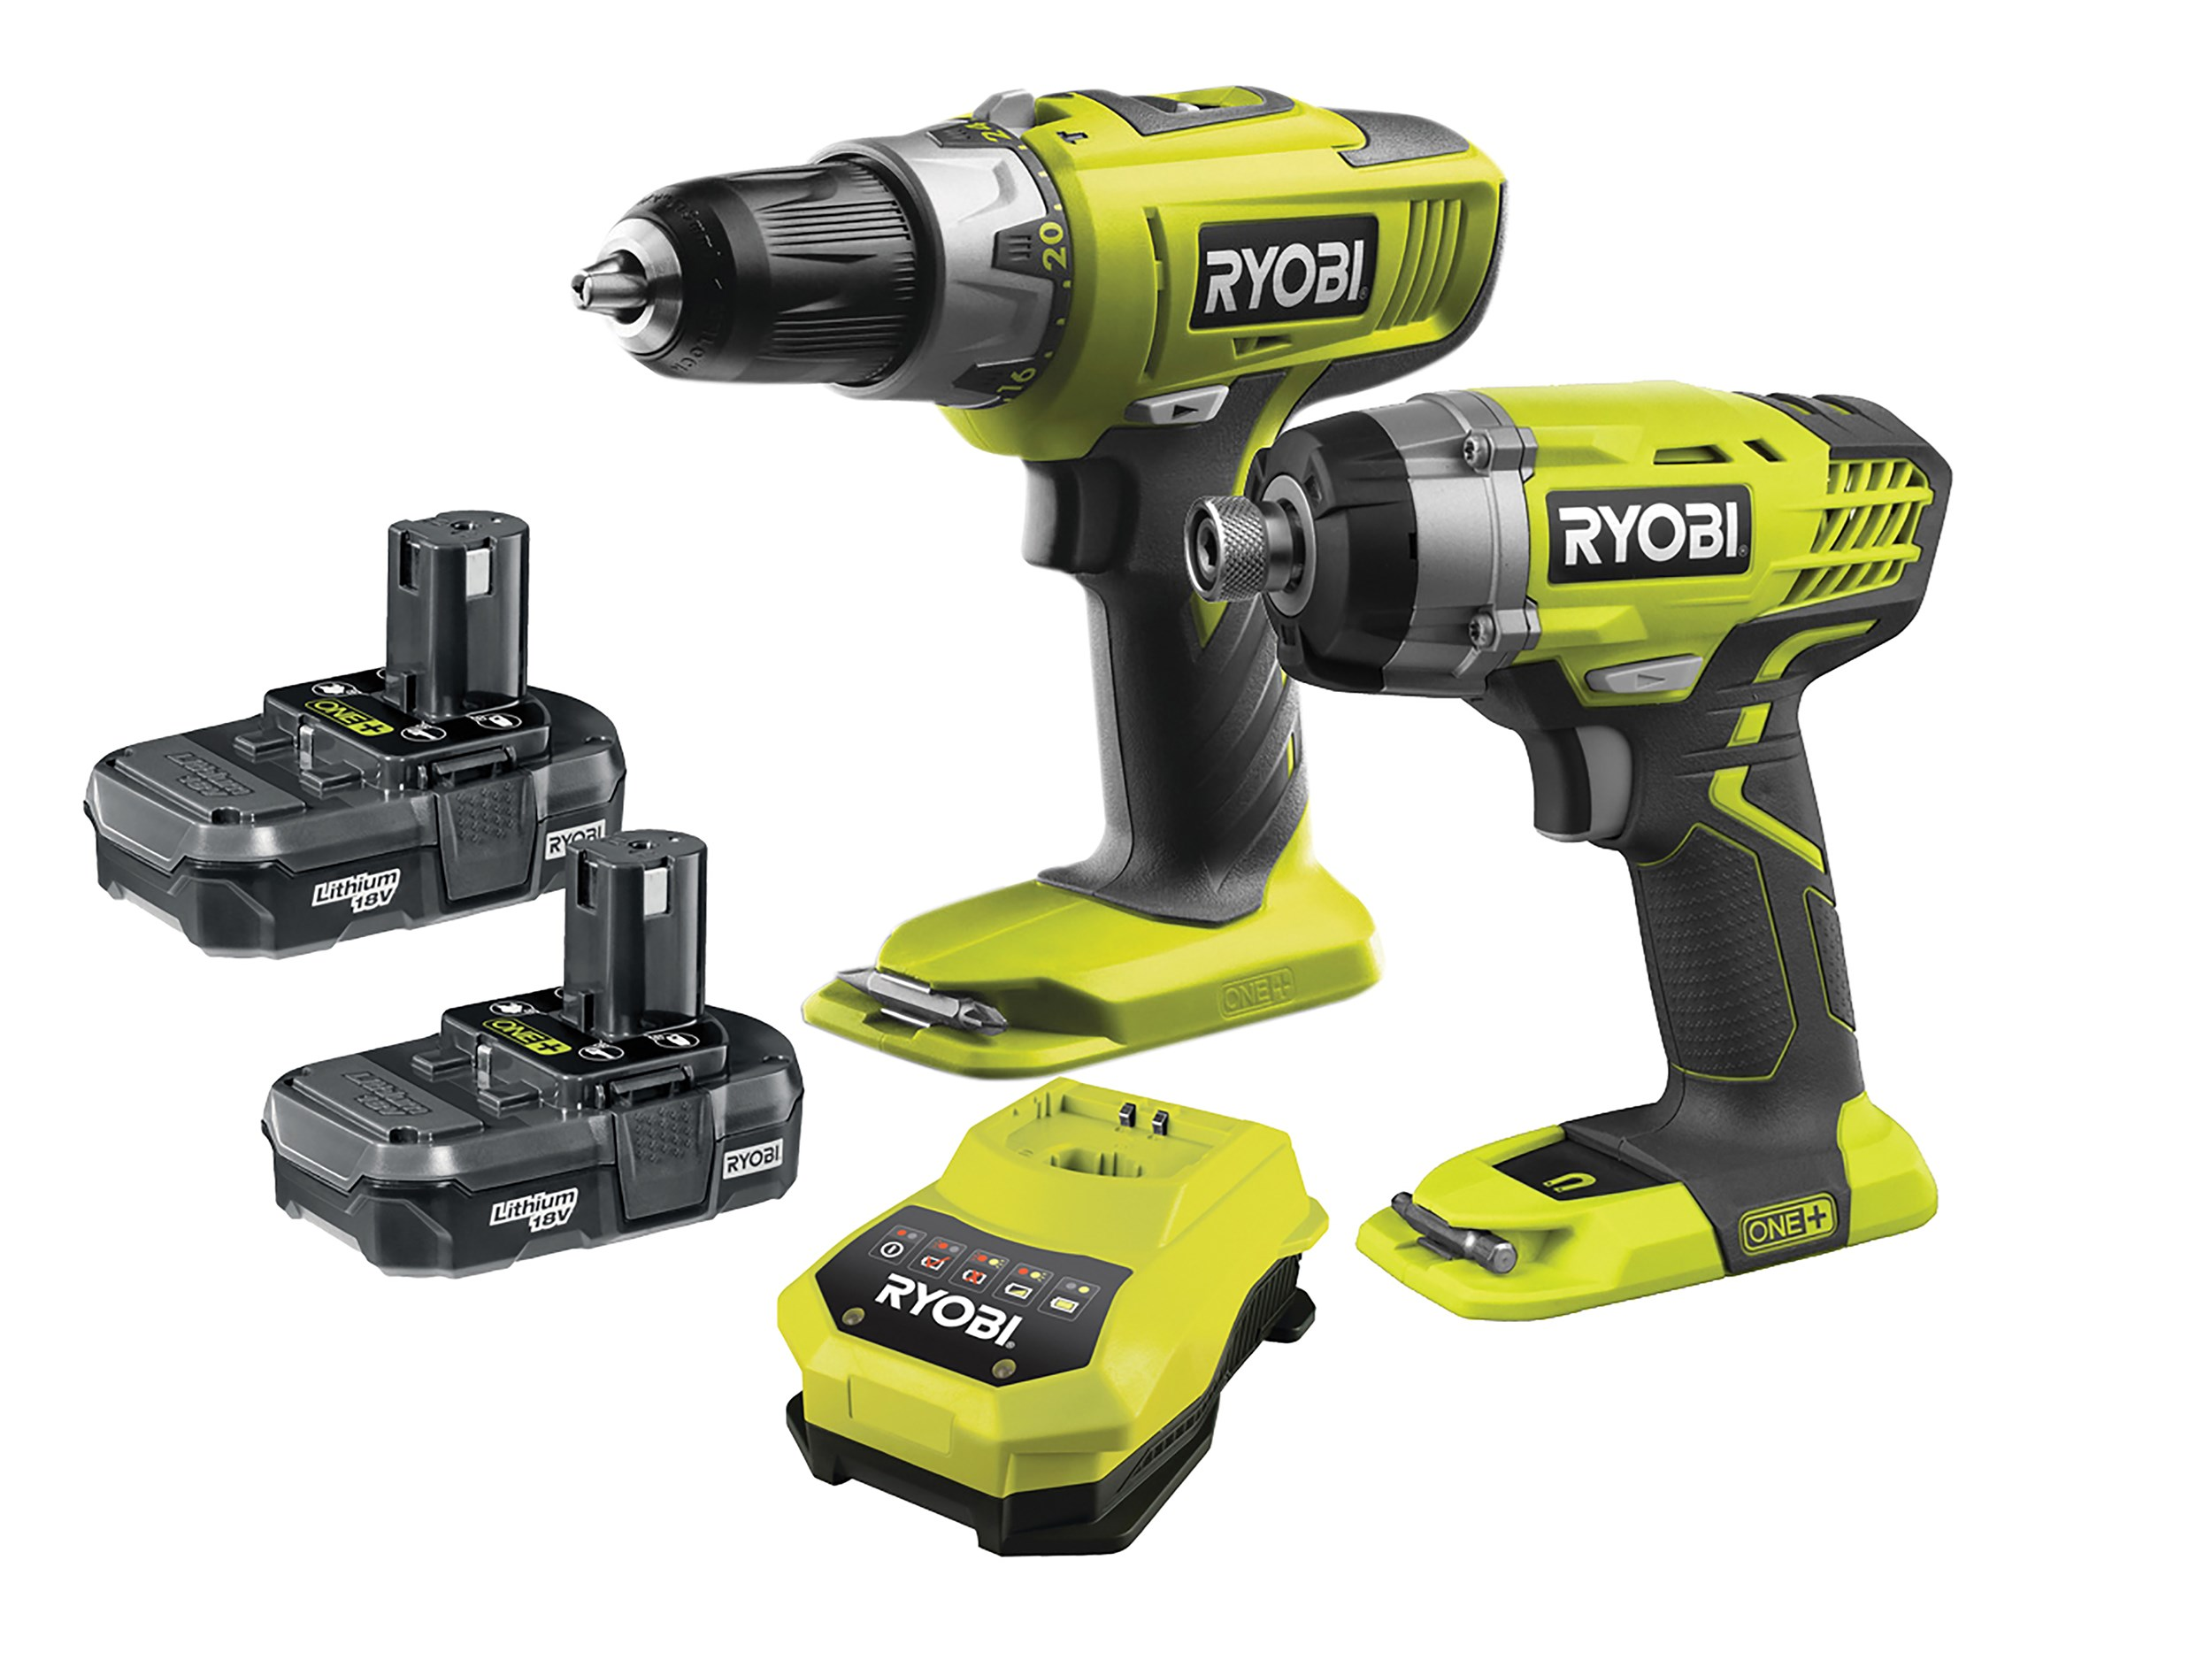 Ryobi One+ Combi Drill & Impact Driver Twin Pack - 18V